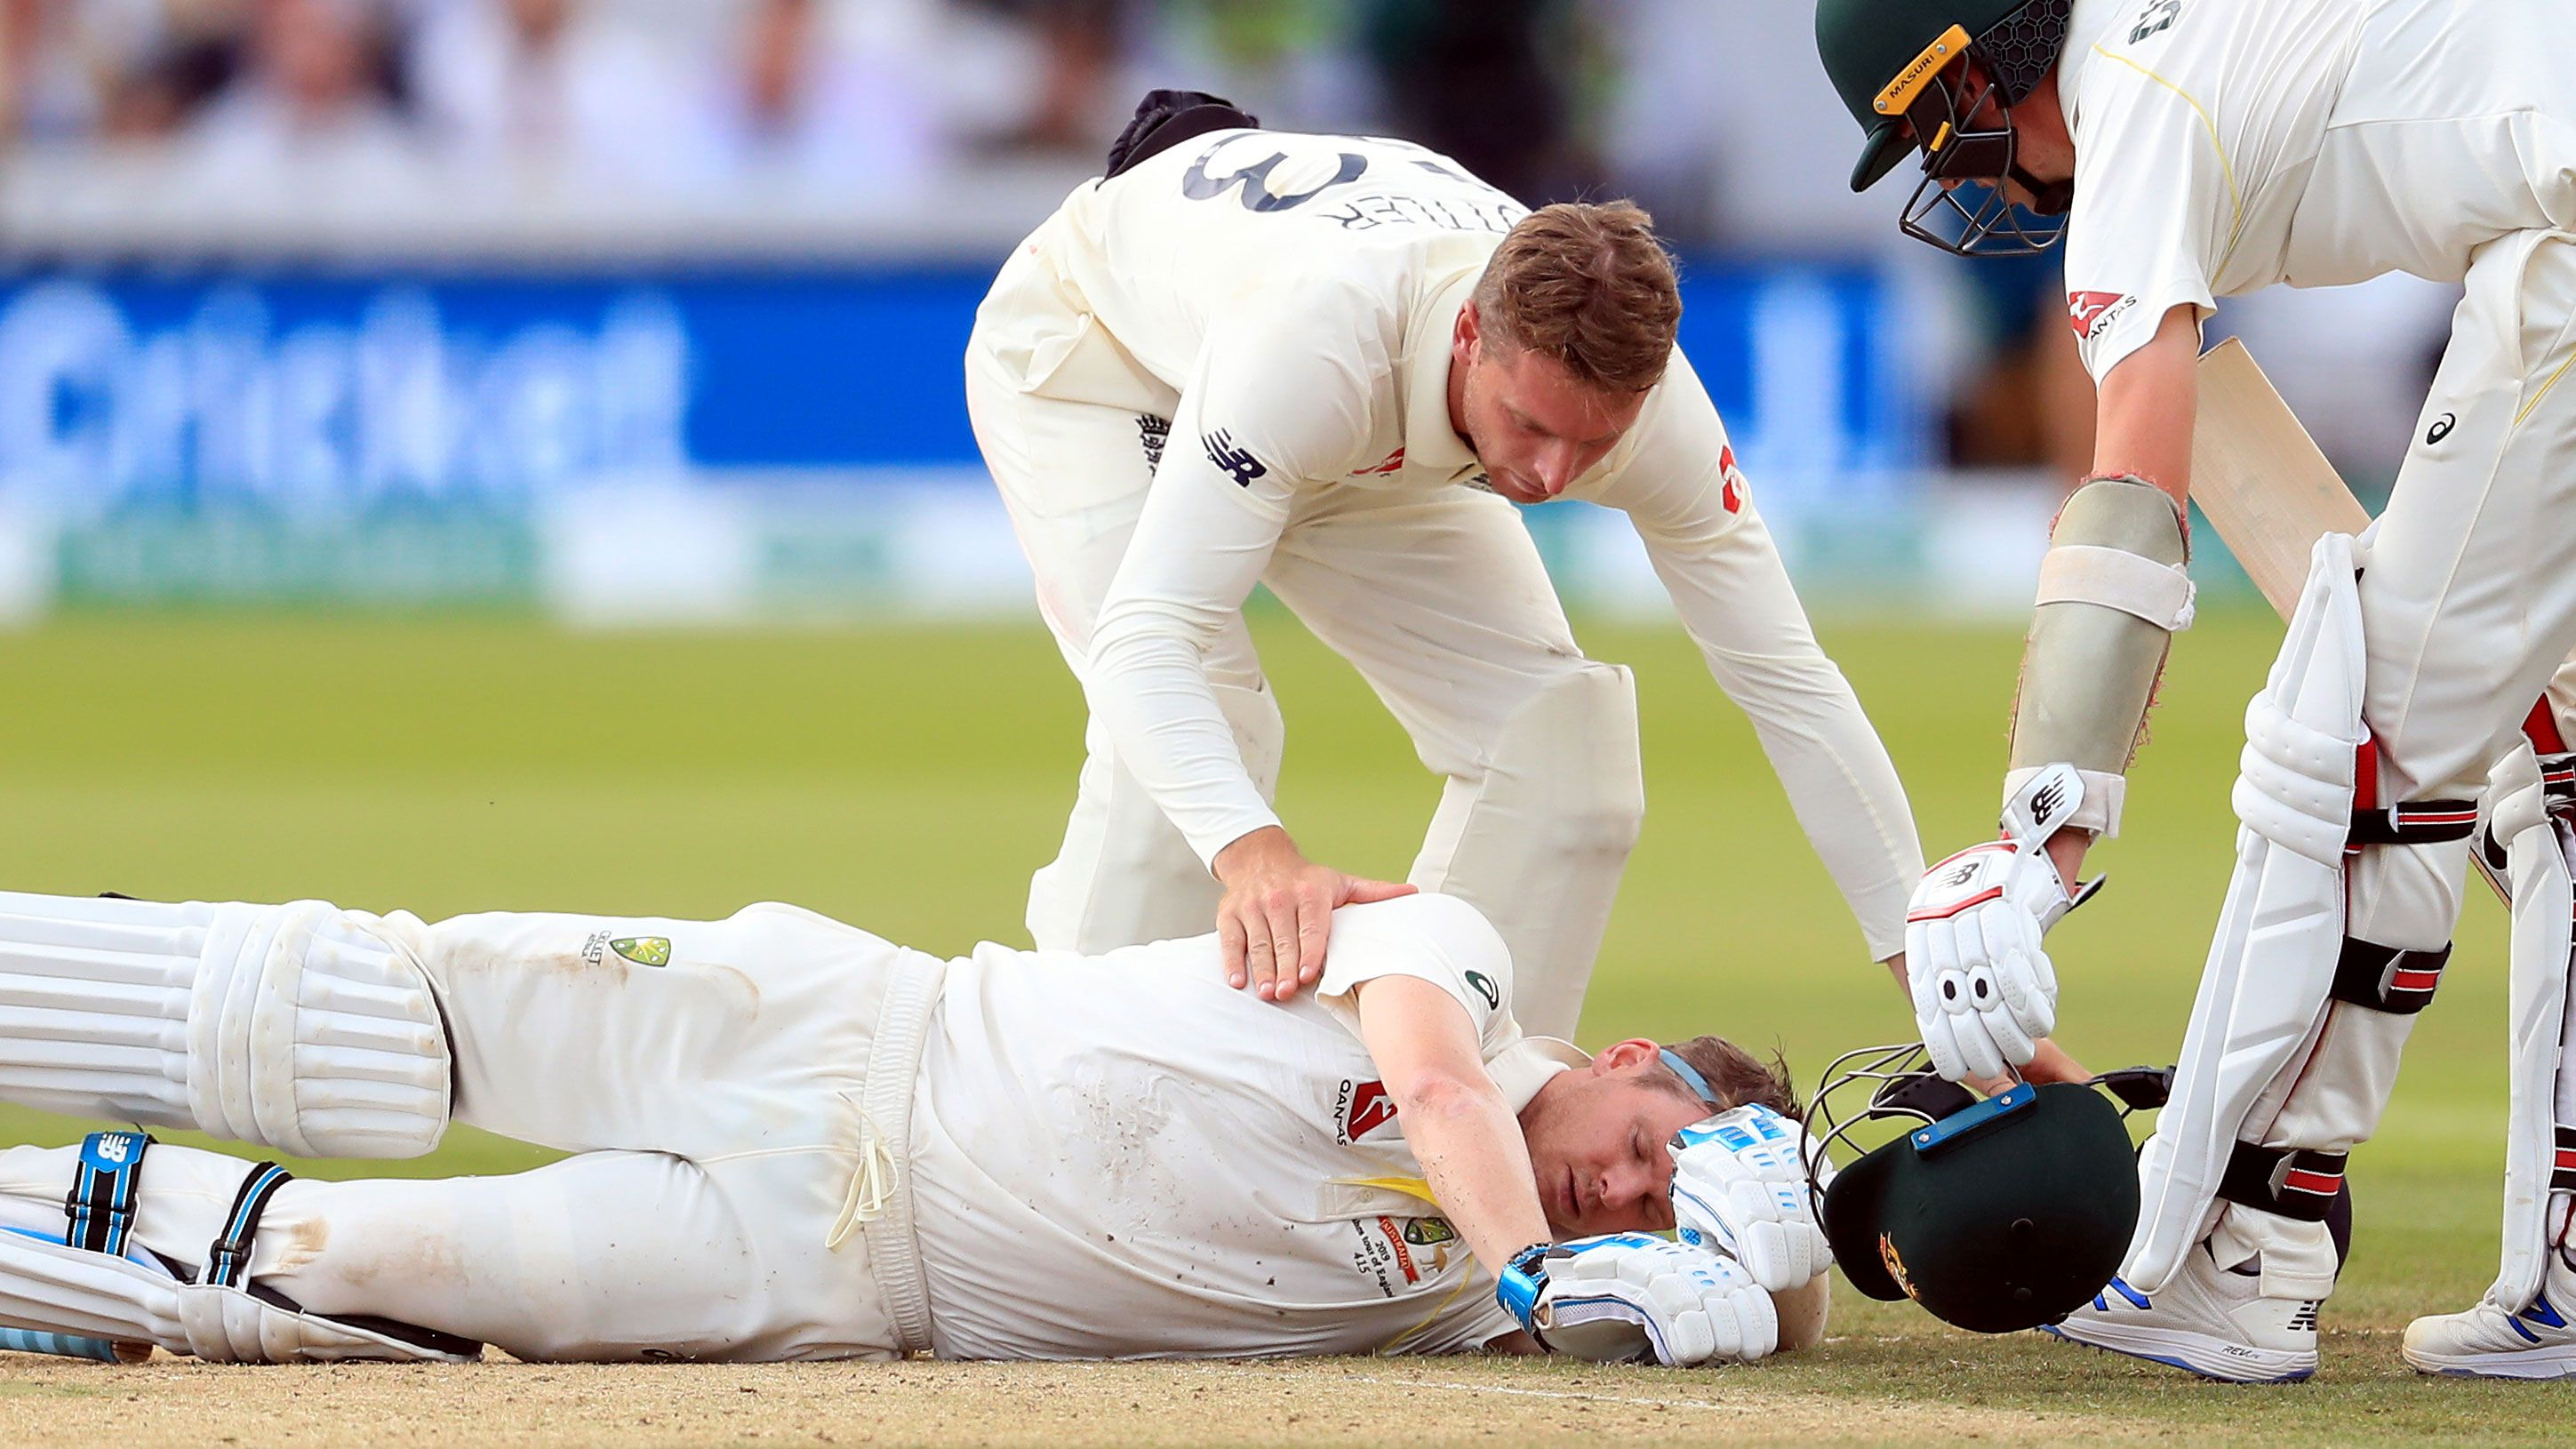 Ashes 2019: Neck guard no longer a worry for Steve Smith after Old Trafford double century